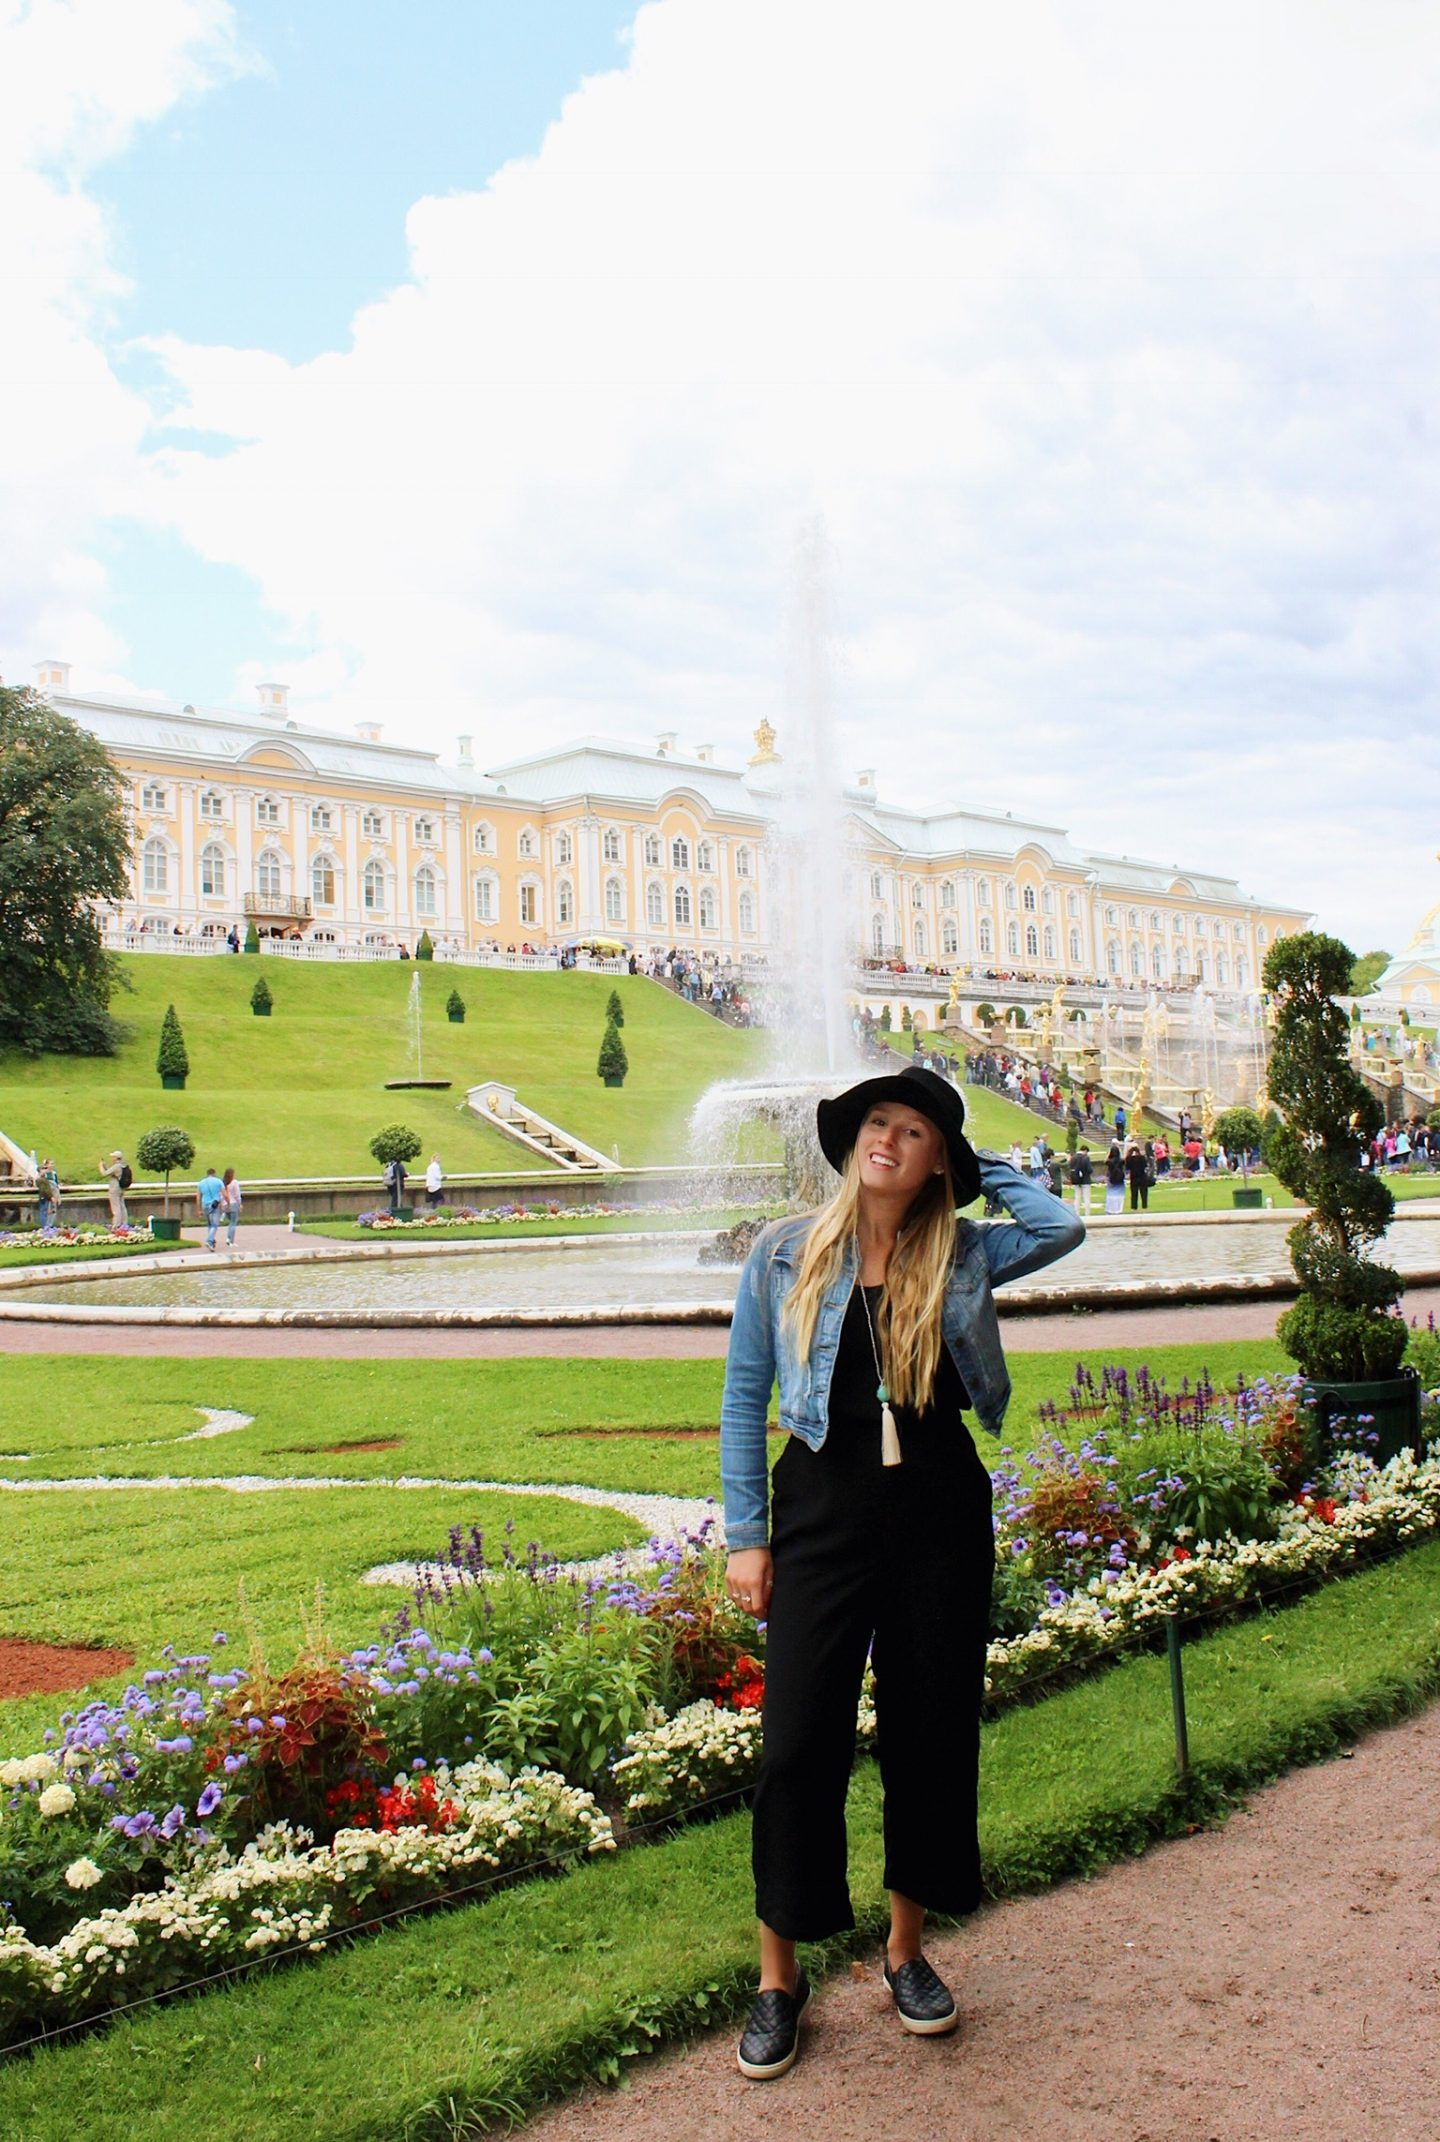 The Best Of St. Petersburg, Russia In 2 Days